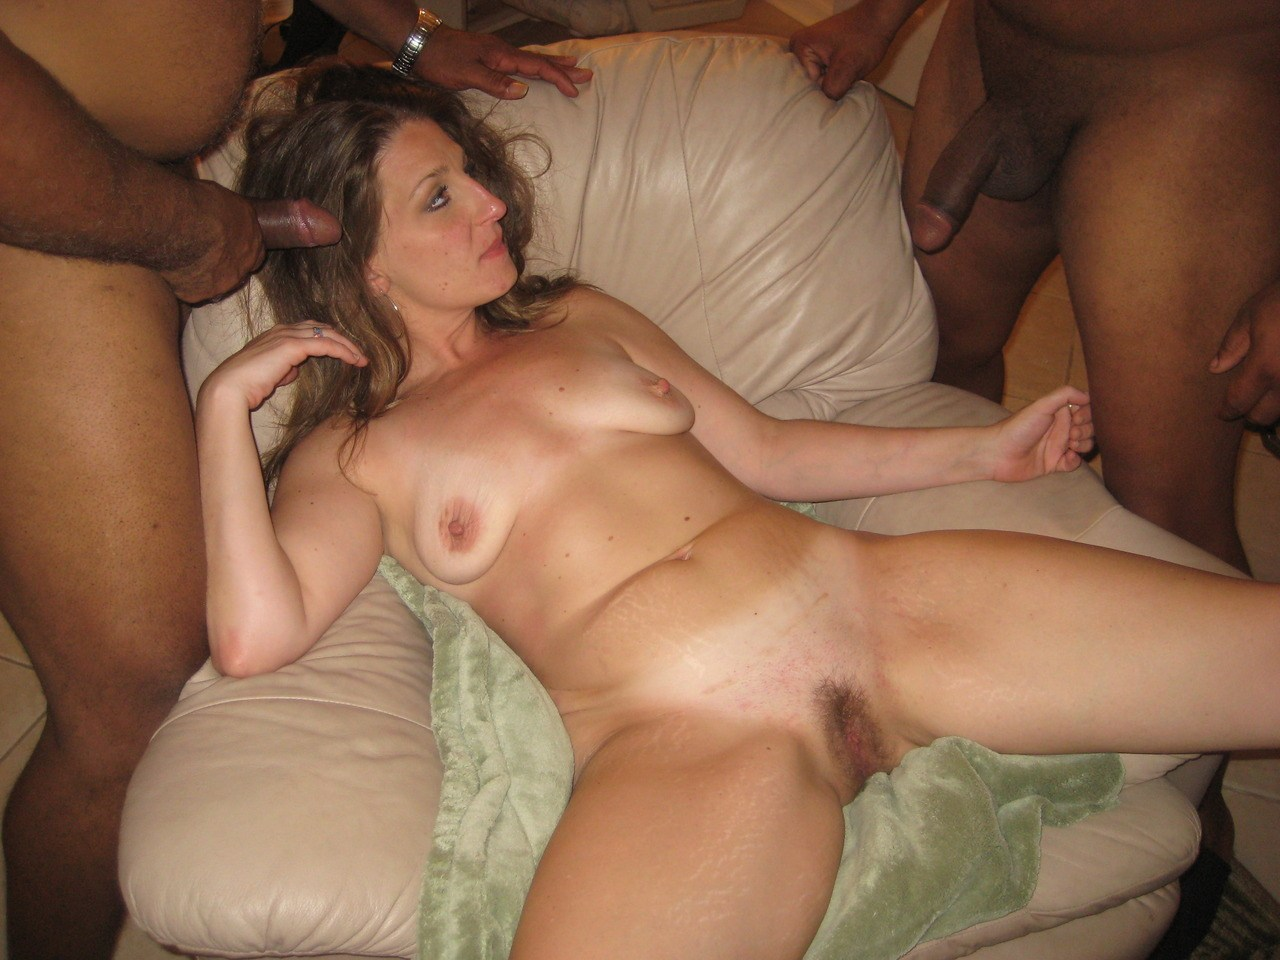 Anal Loving Wife Free Real Porn Photo